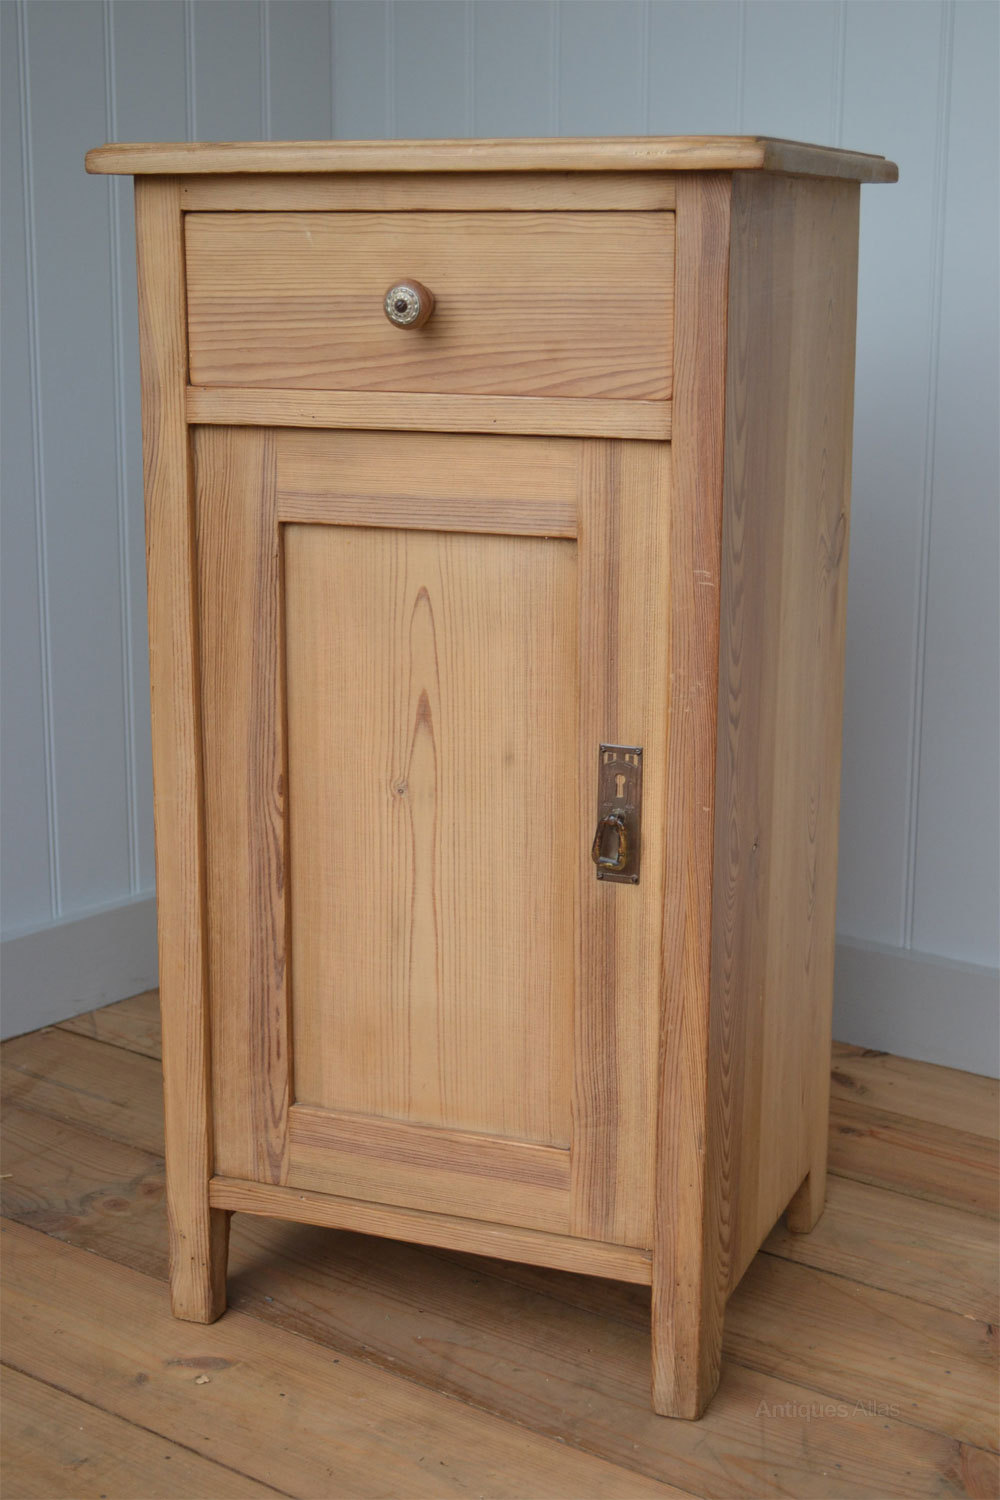 Continental 1920s pine bedside cabinet cupboard Antique ... - Continental 1920's Pine Bedside Cabinet Cupboard - Antiques Atlas